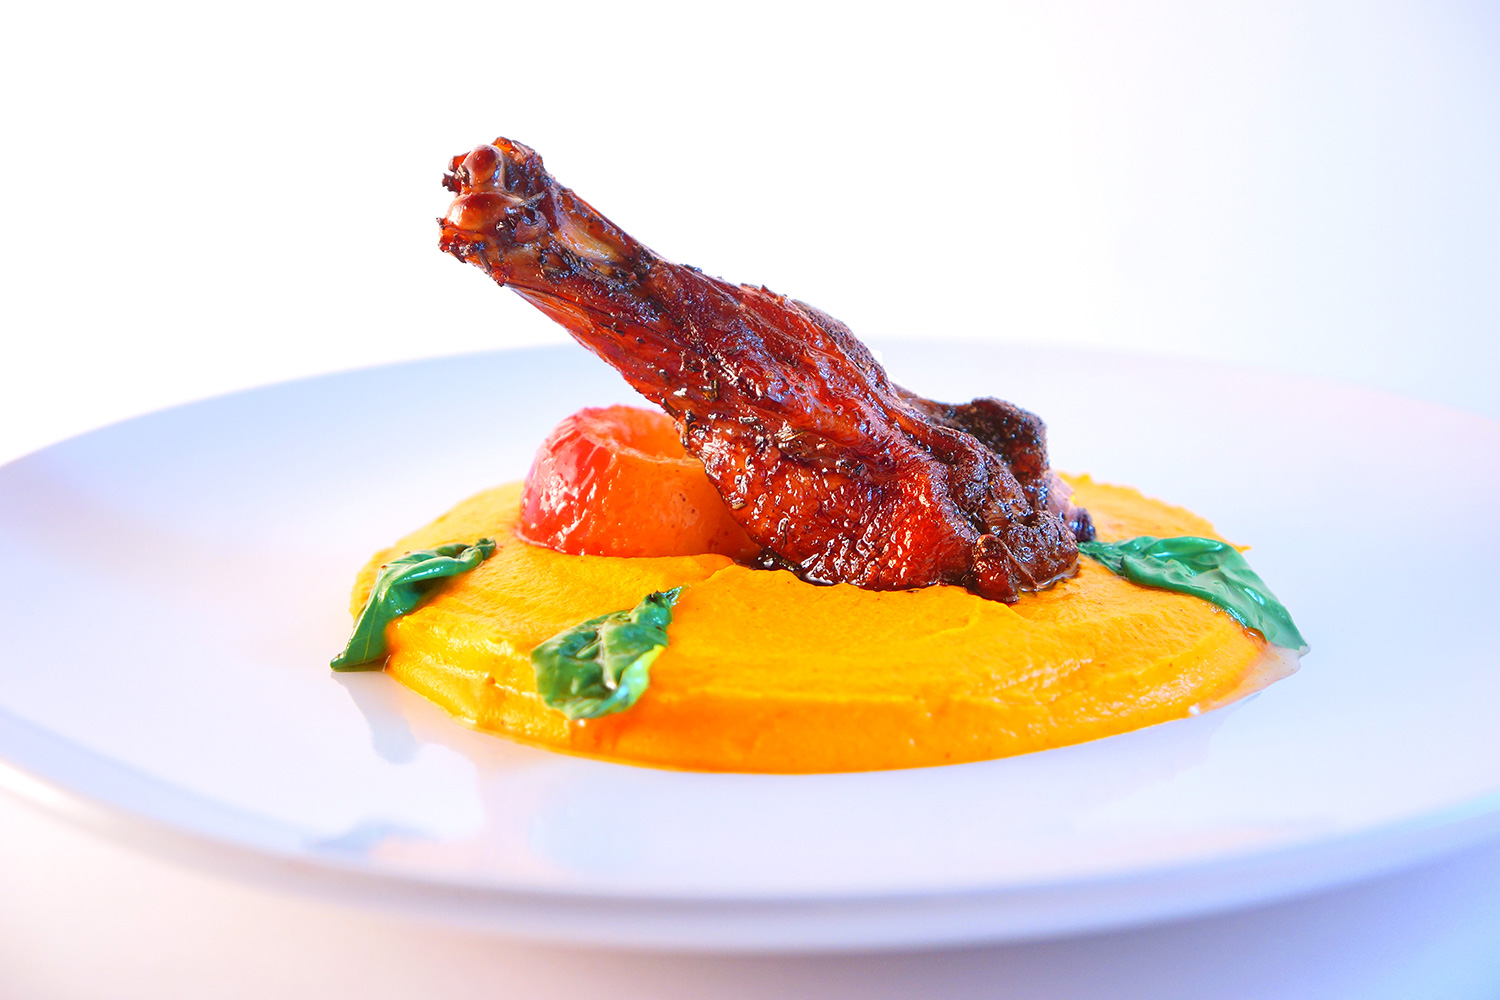 Roasted Duck over Carrot Purée with Candied Basil and Brandy Poached Apple